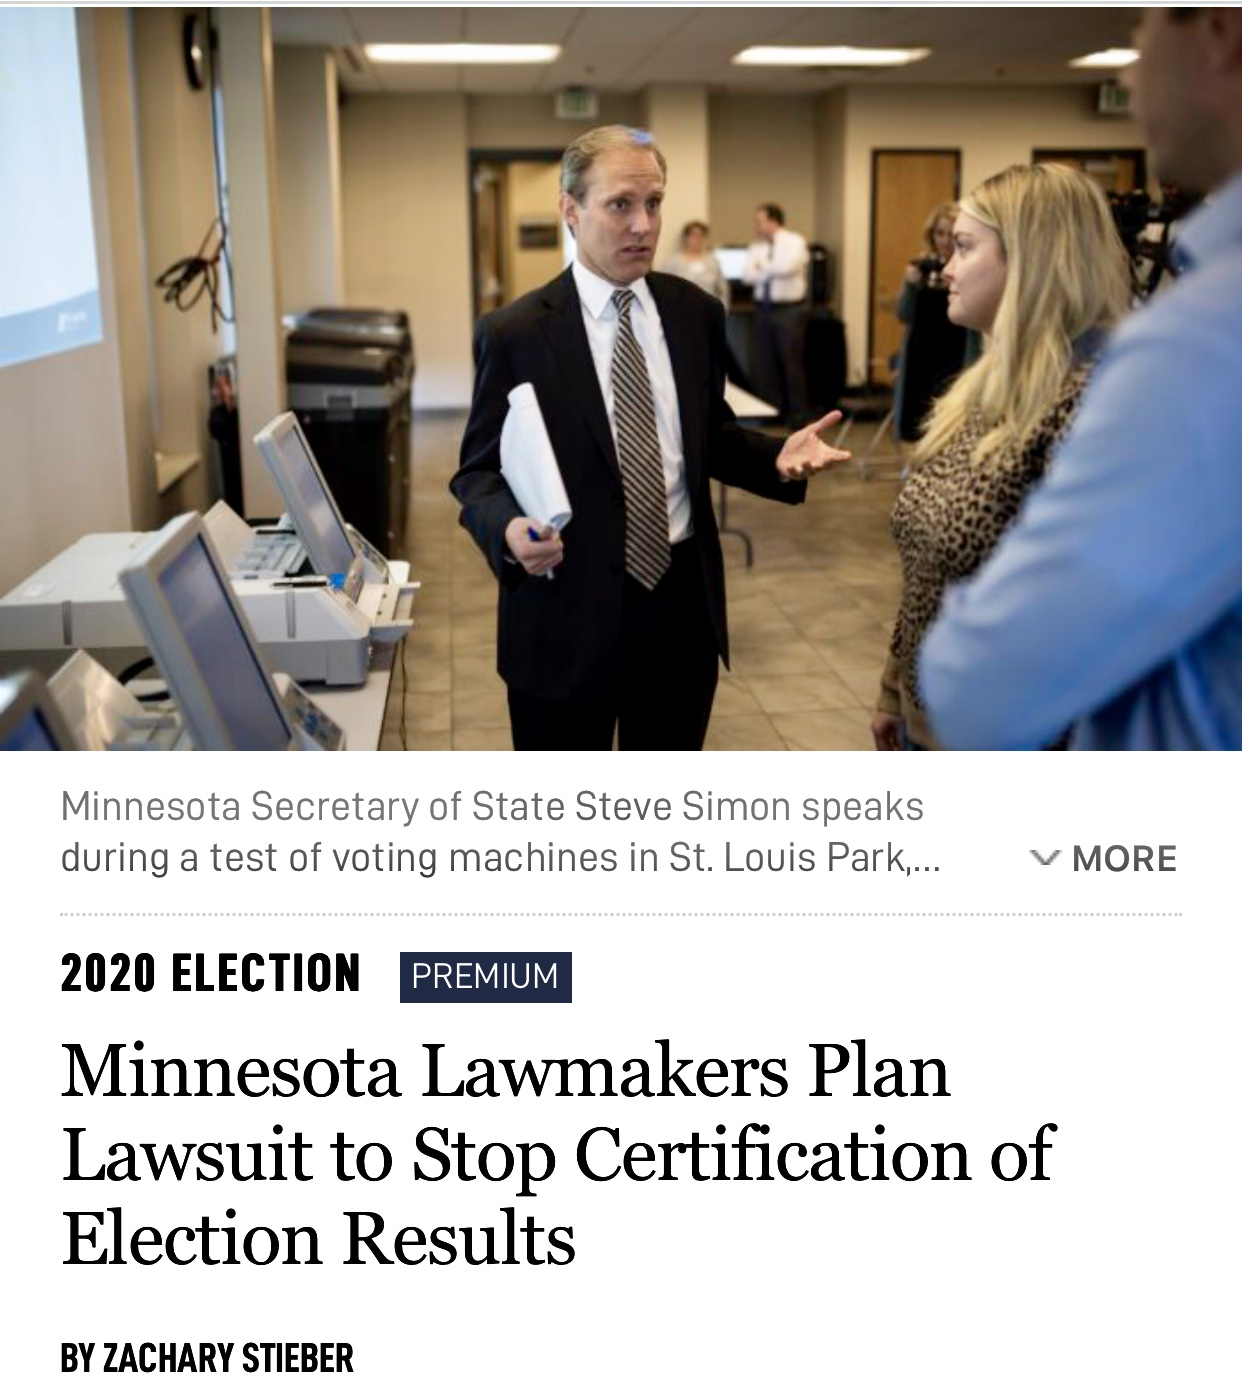 Minnesota Lawmakers Plan Lawsuit to Stop Certification of Election Results